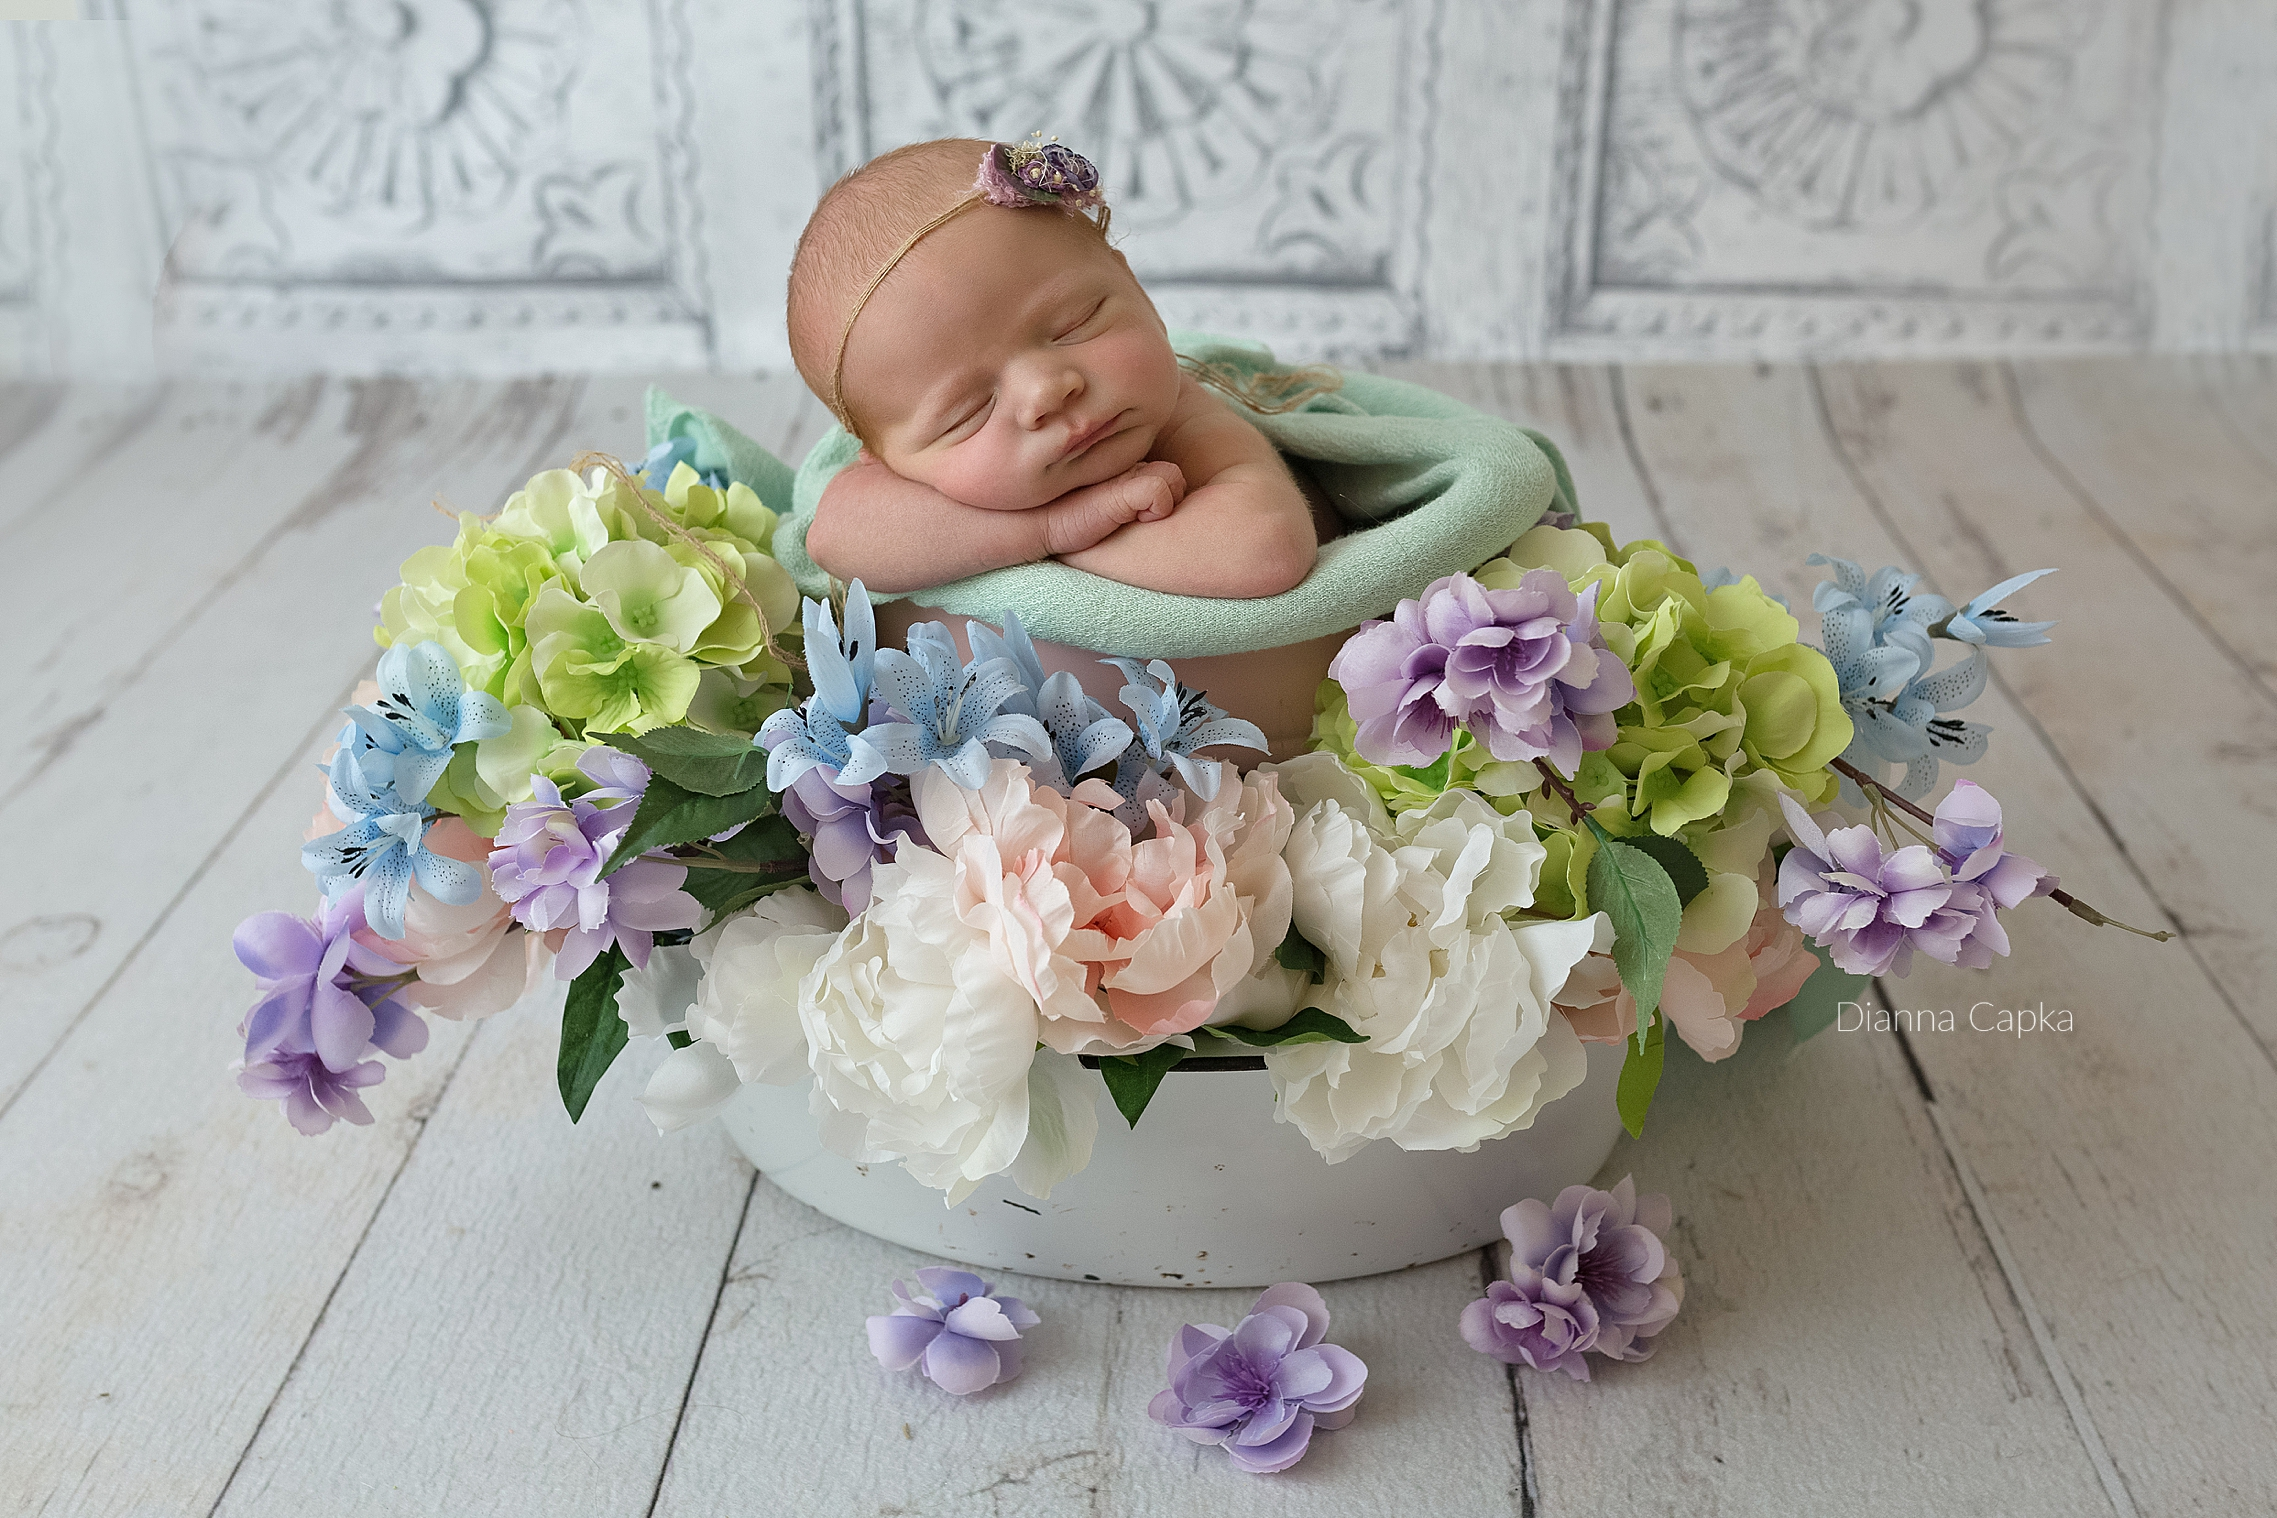 Newborn Photographer Lancaster county PA Central PA Berks, York, Lebanon, Reading Sydney